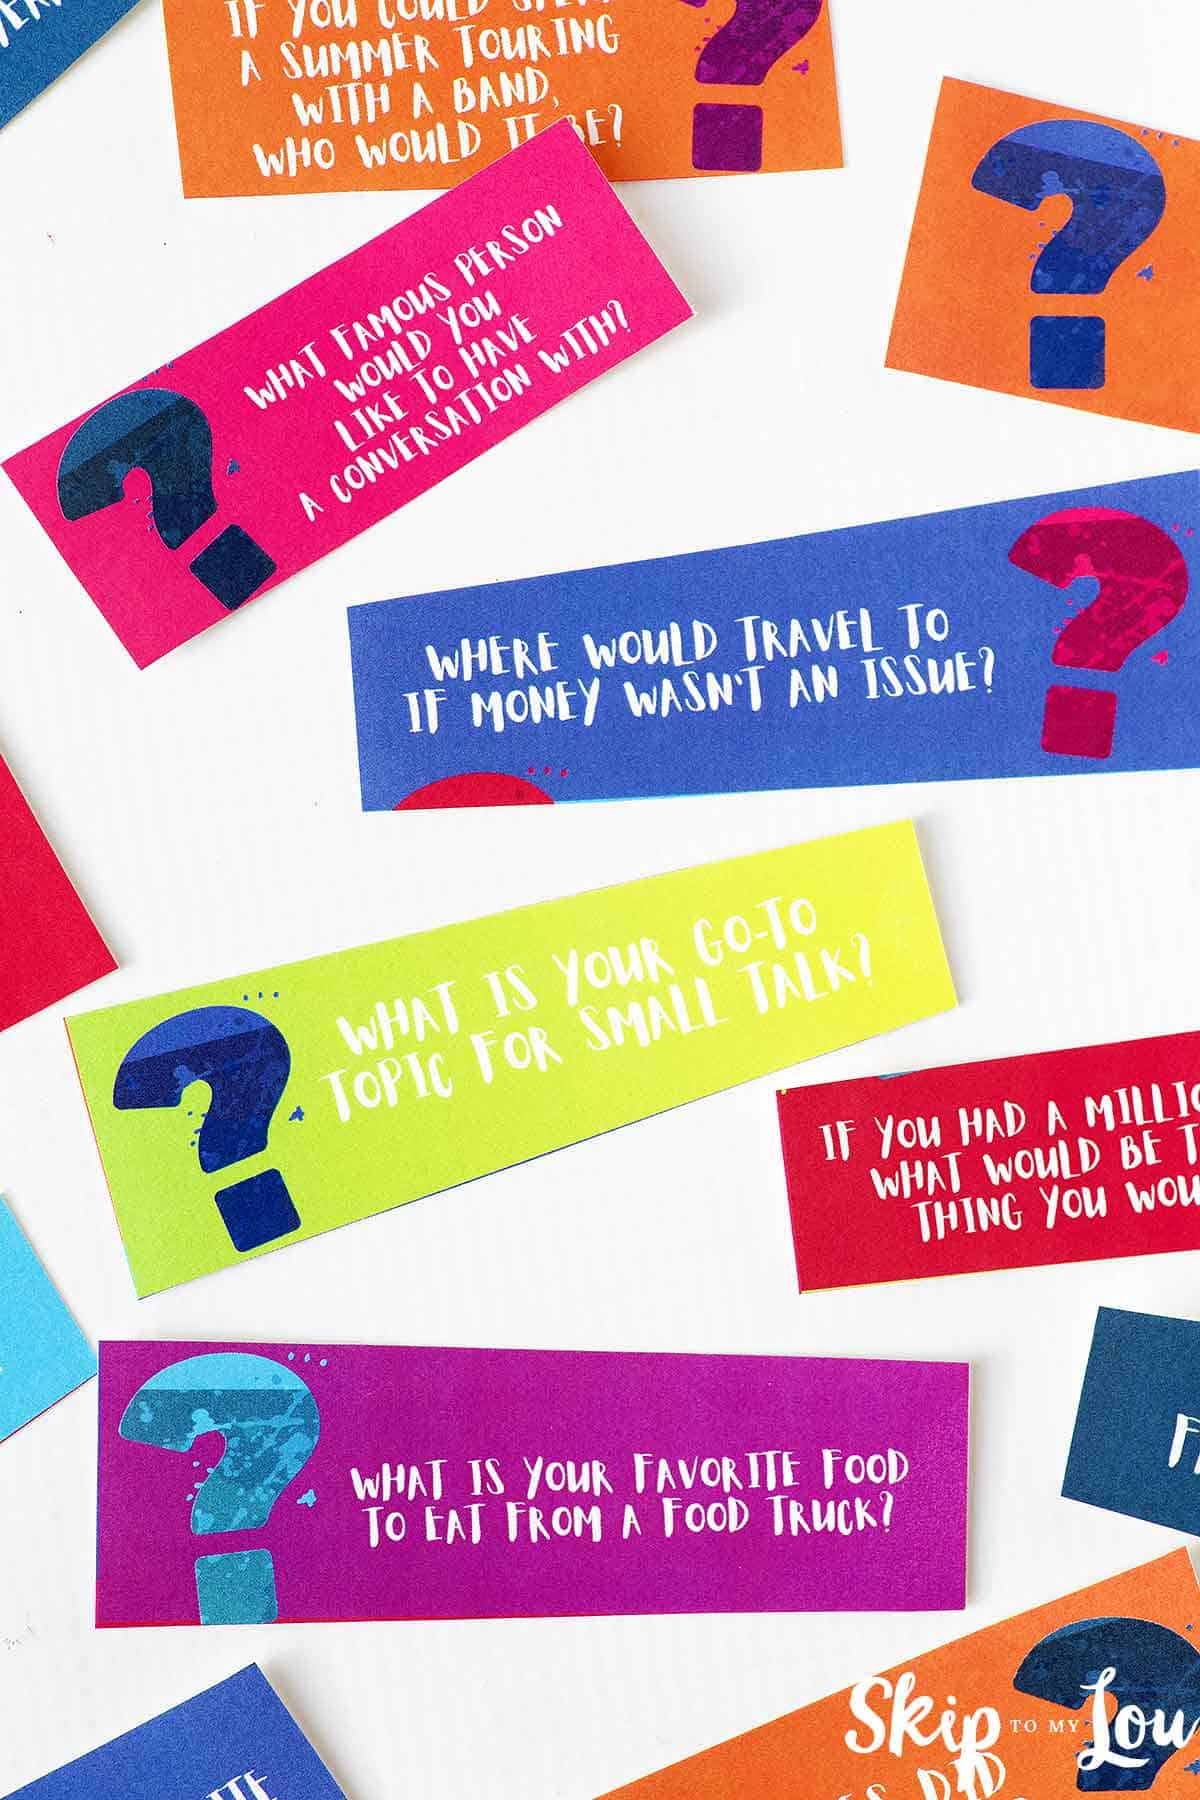 colorful cards with questions printed on them to play 21 questions